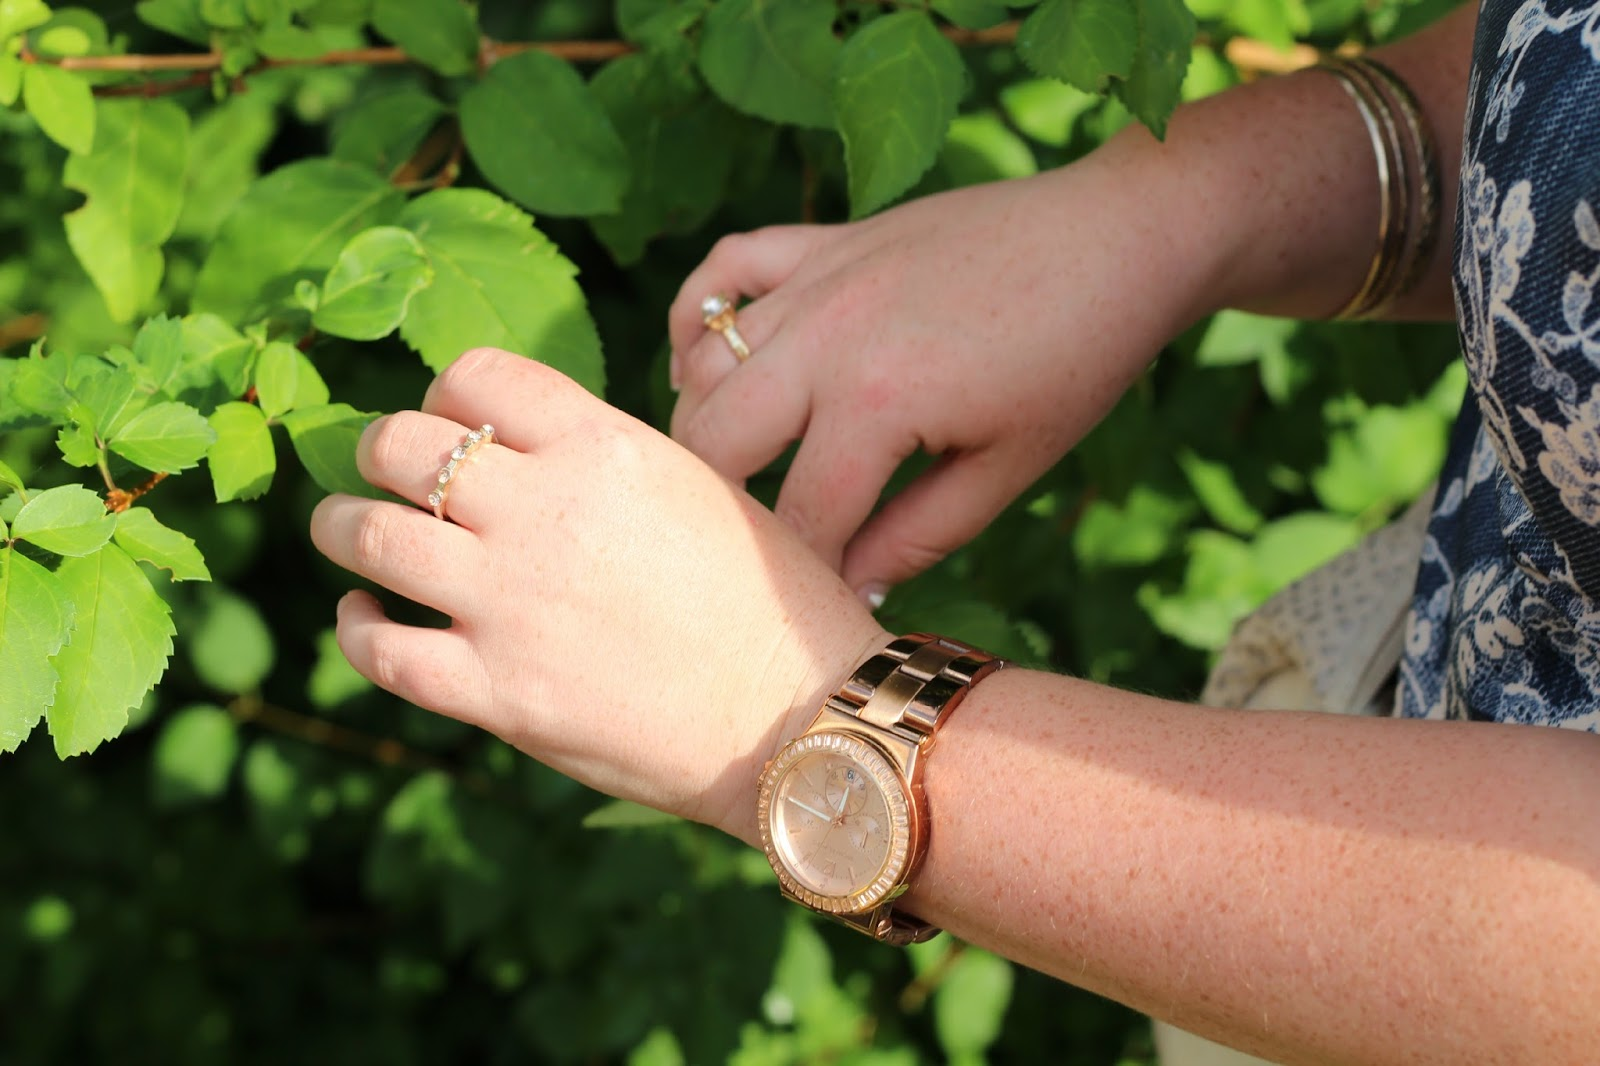 rose gold michael kors watch, gold and pink primark rings, gold primark bangles,